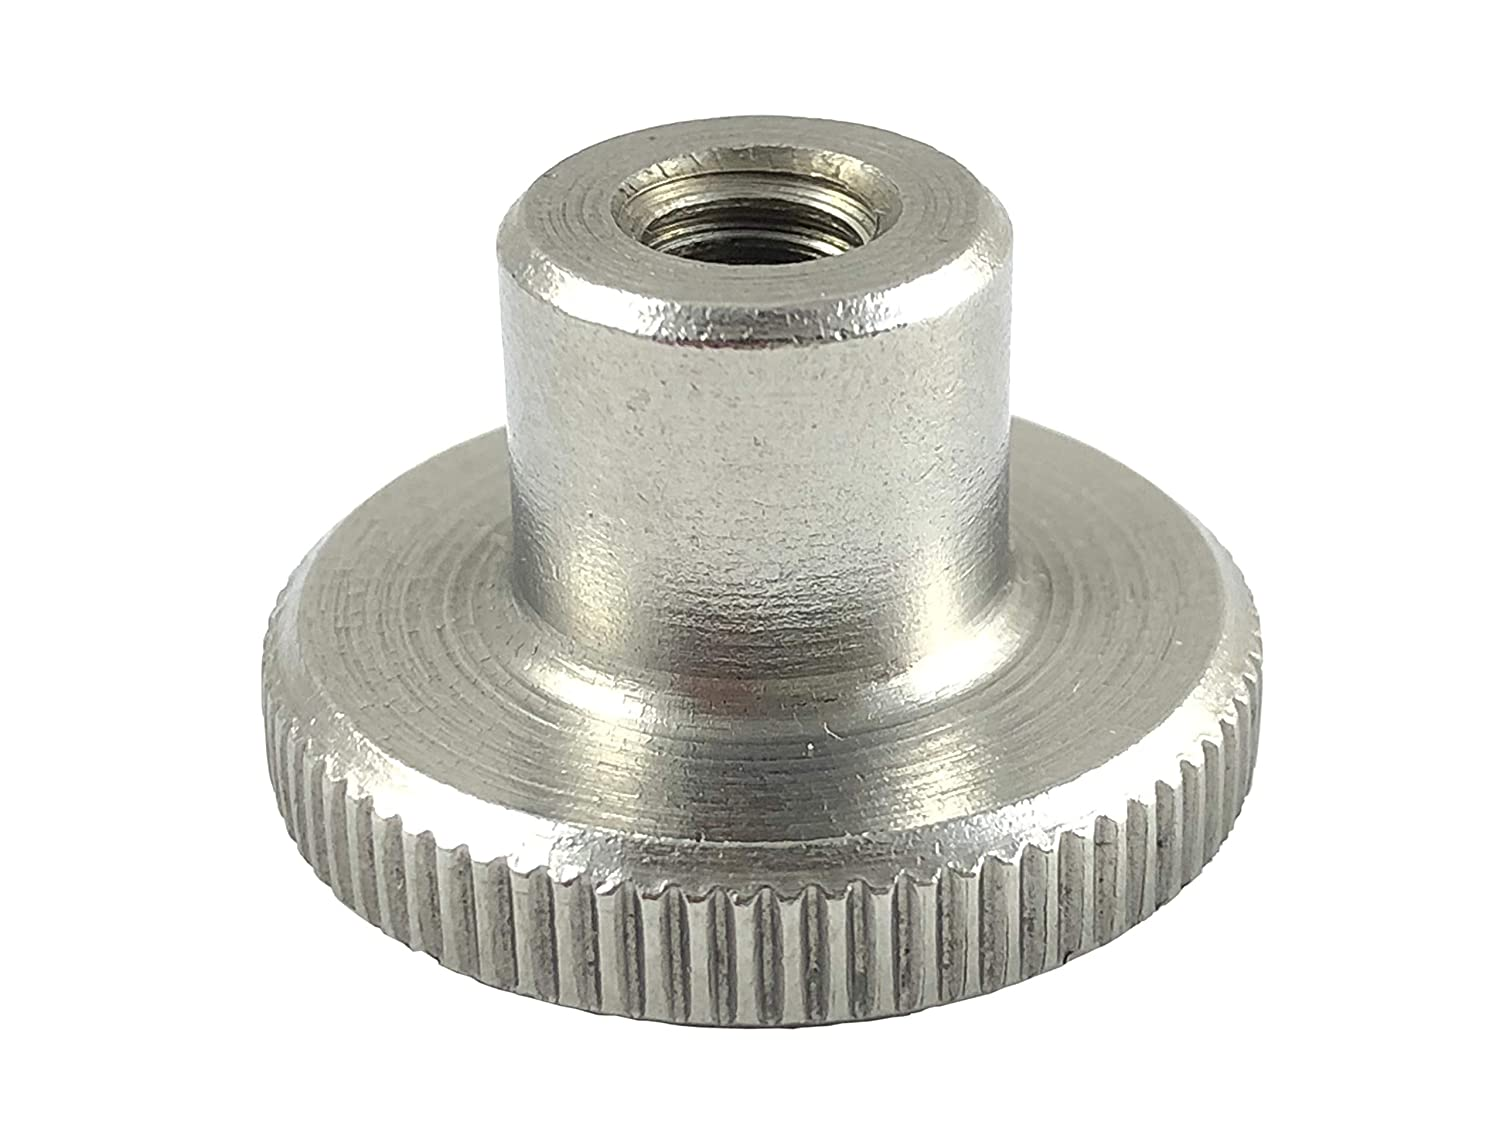 ruthex 10x Knurled Nuts M4 DIN 466 Stainless Steel V2A